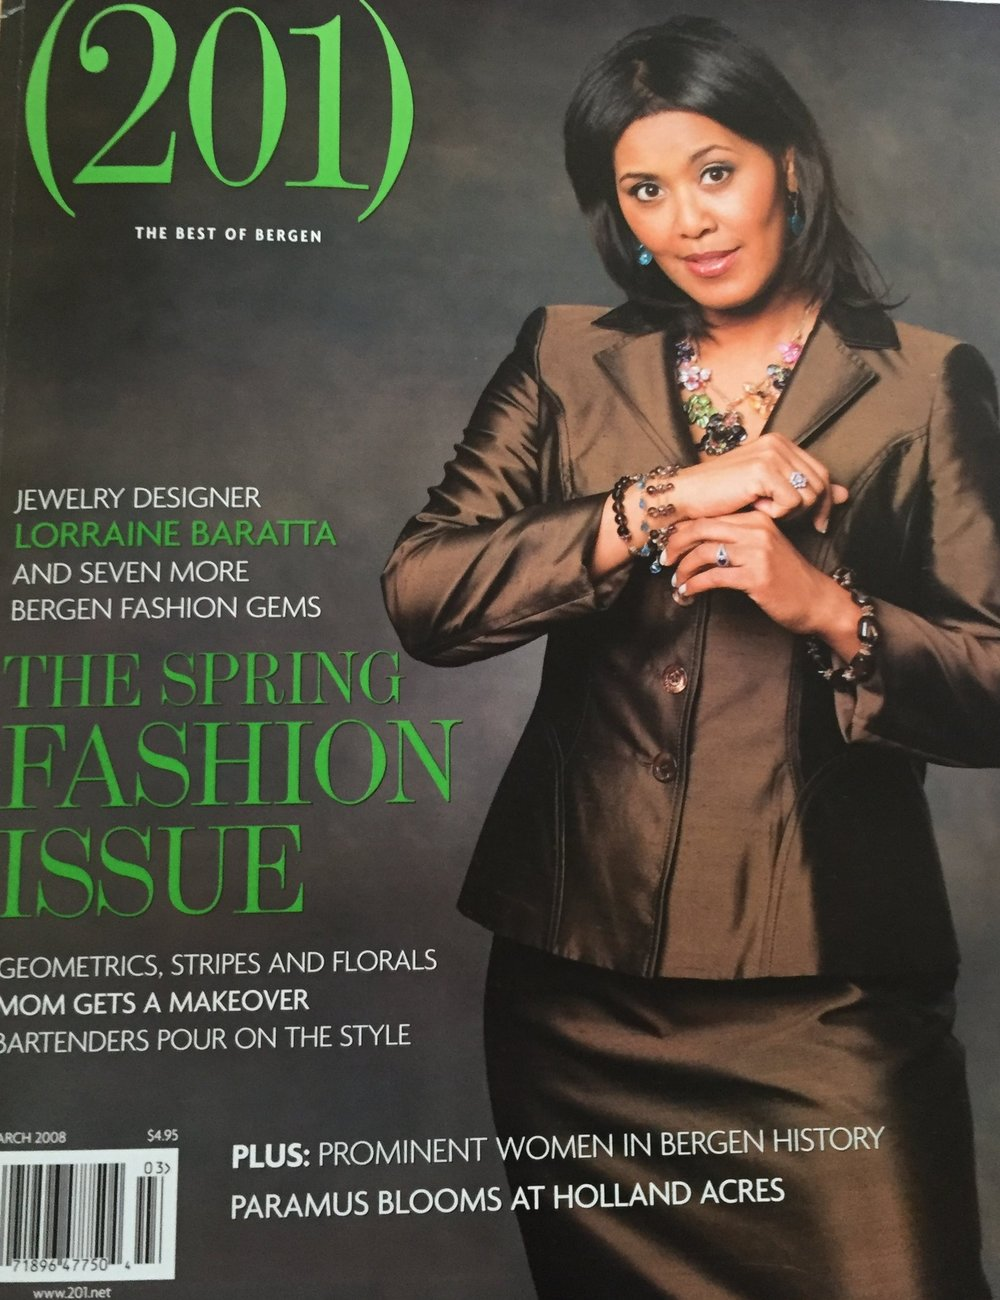 201 Magazine March 2008 Issue